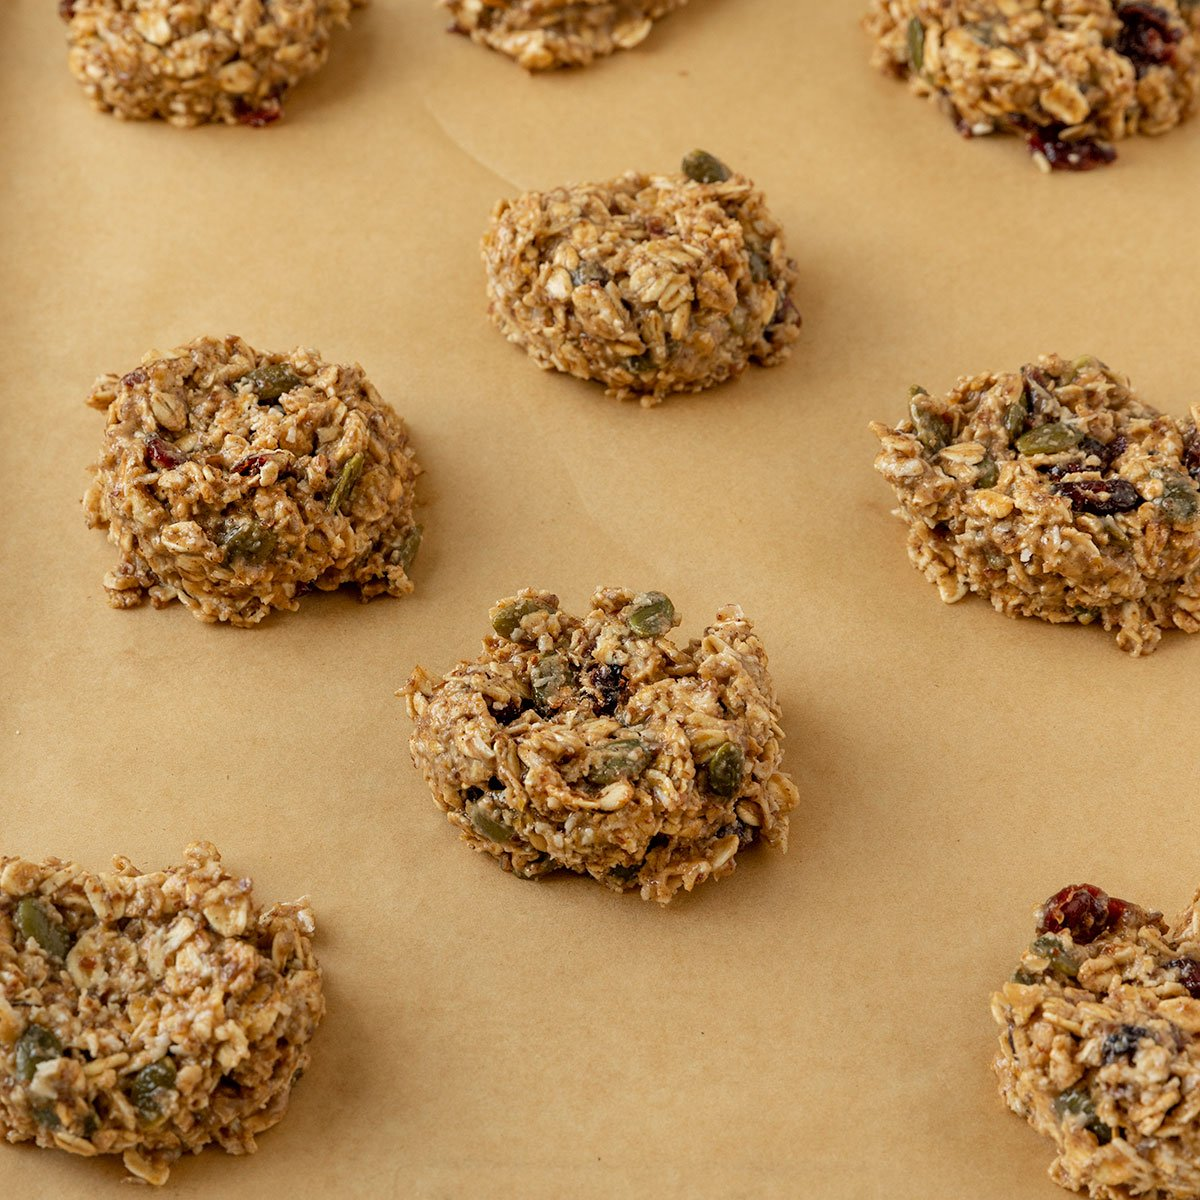 scooped breakfast cookies on parchment lined baking tray before baking